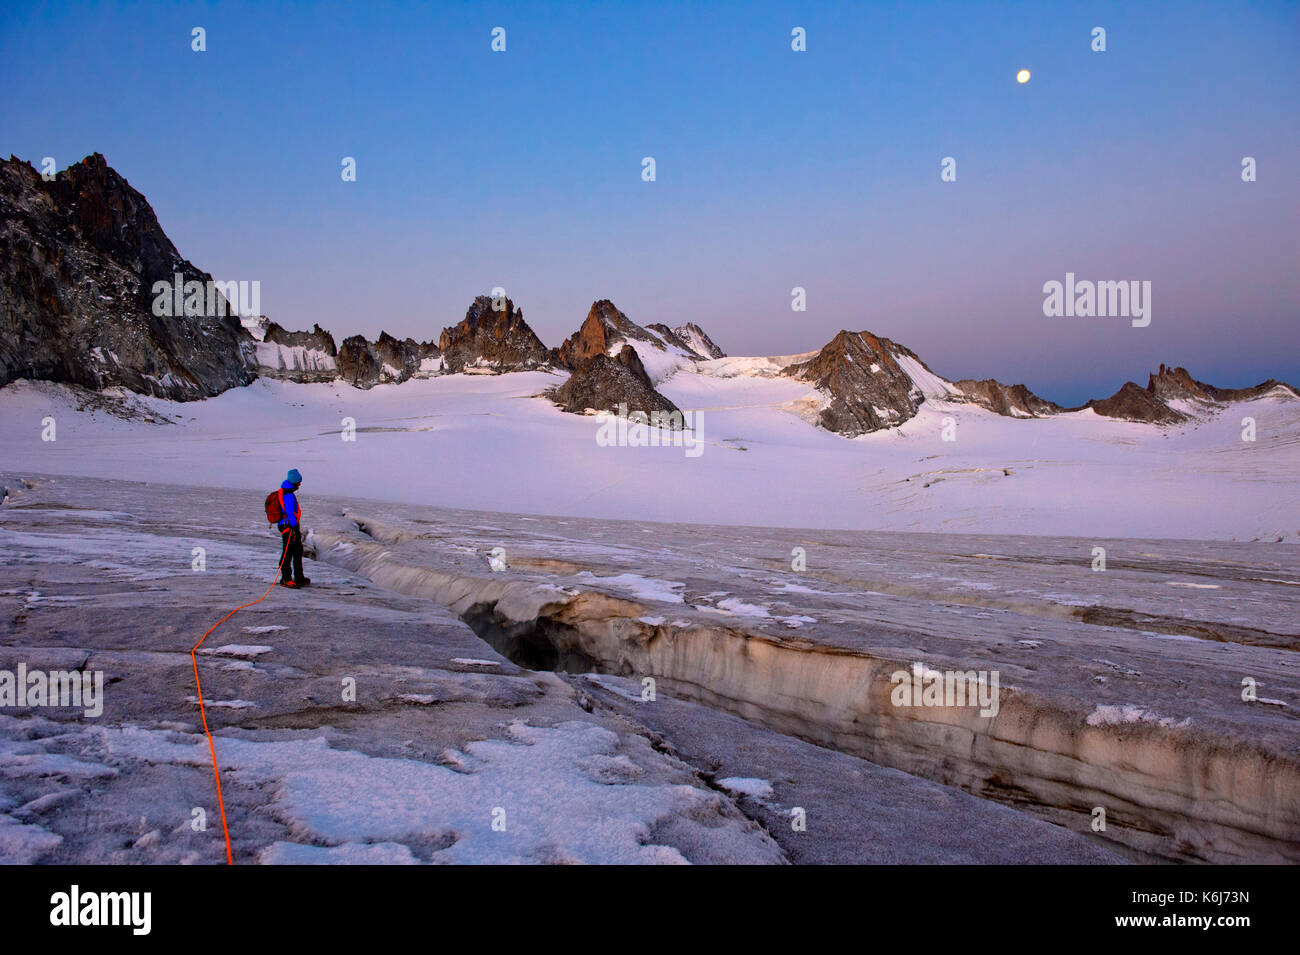 Alpinist at a crevasse on the glacier Plateau du Trient at full moon, Valais, Switzerland - Stock Image